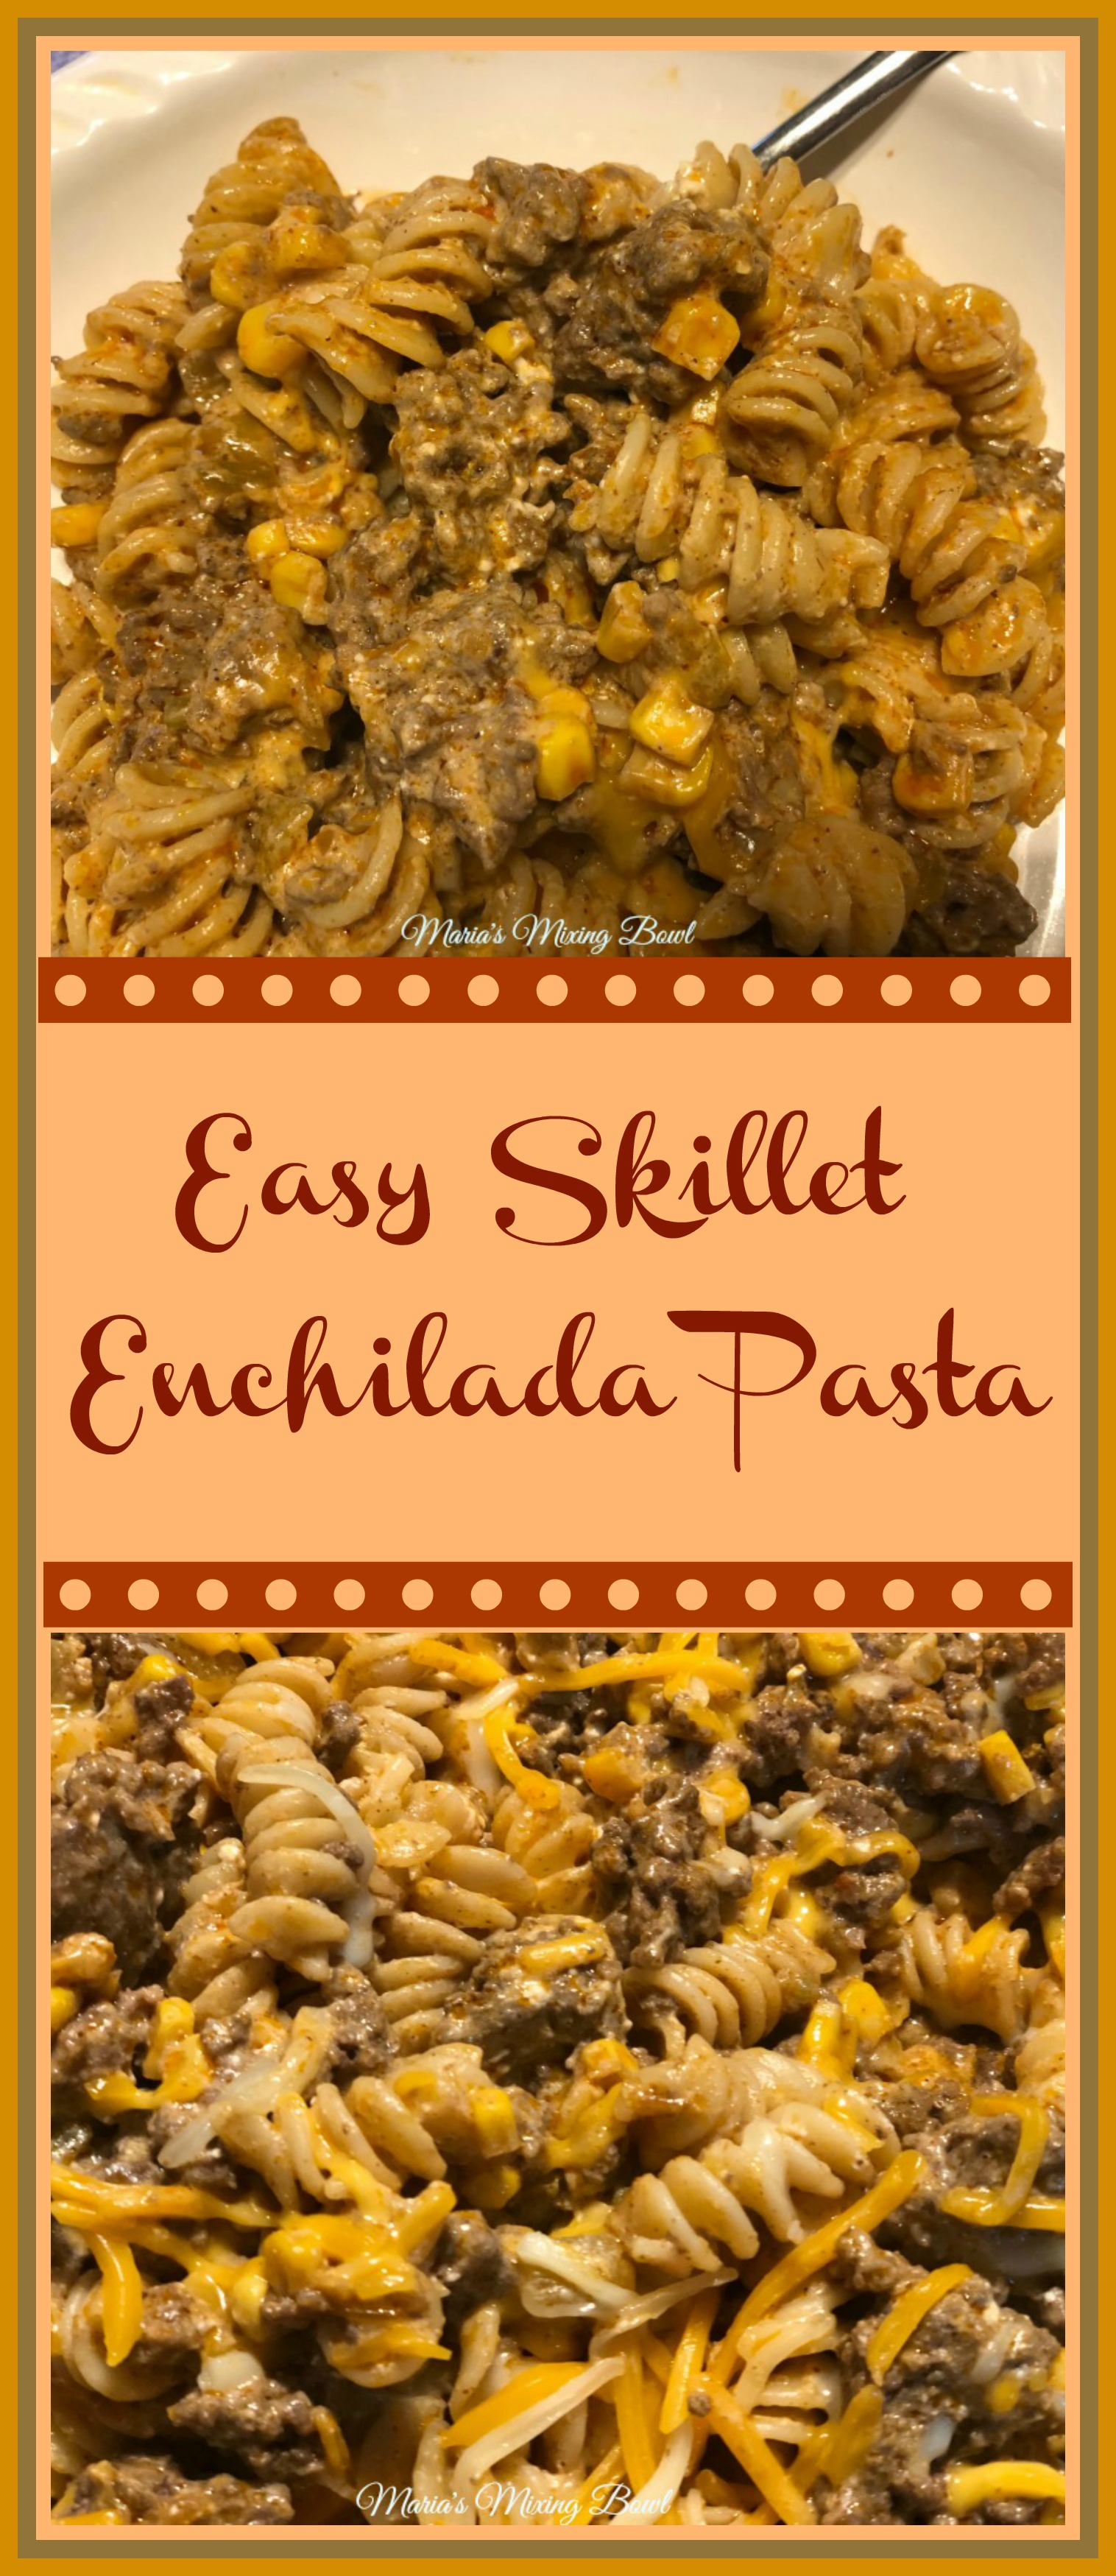 Easy Skillet Enchilada Pasta -  A one pan meal that makes a weeknight dinner really simple and quick. Who doesn't love a quick and delicious meal during the week? We sure do!!